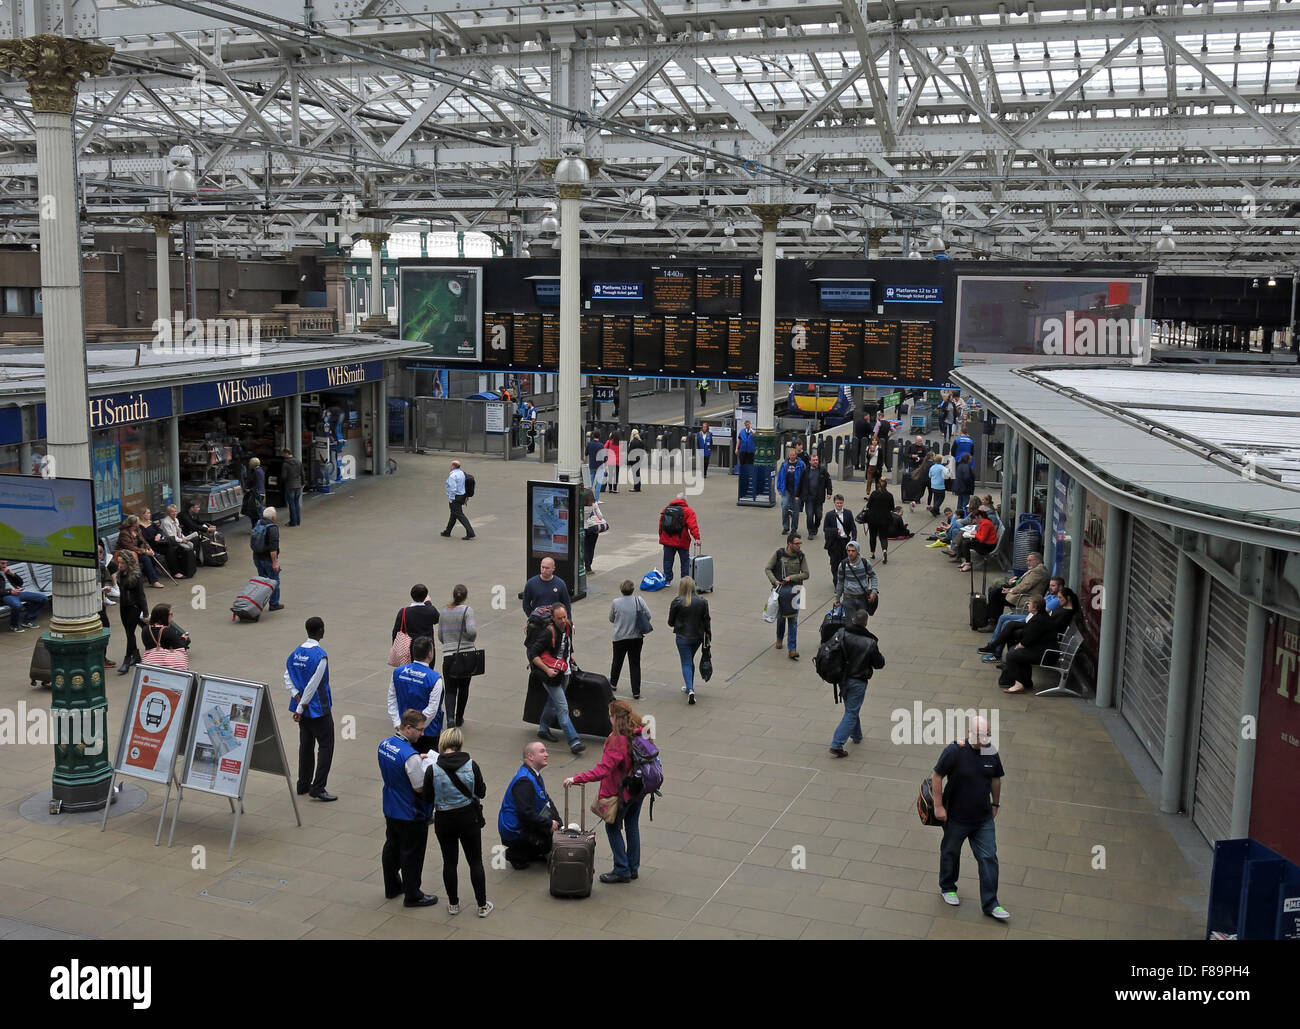 Main,City,Centre,Terminus,transit,transport,train,travel,inside,interior,Scotrail,British,Rail,BR,Franchise,Network,people,passenger,passengers,customers,terminal,ECML,East,Coast,Line,concourse,departure,board,boards,Waverley,Railway,Station,waiting,main station,British Rail,Network rail,GoTonySmith,display,Buy Pictures of,Buy Images Of